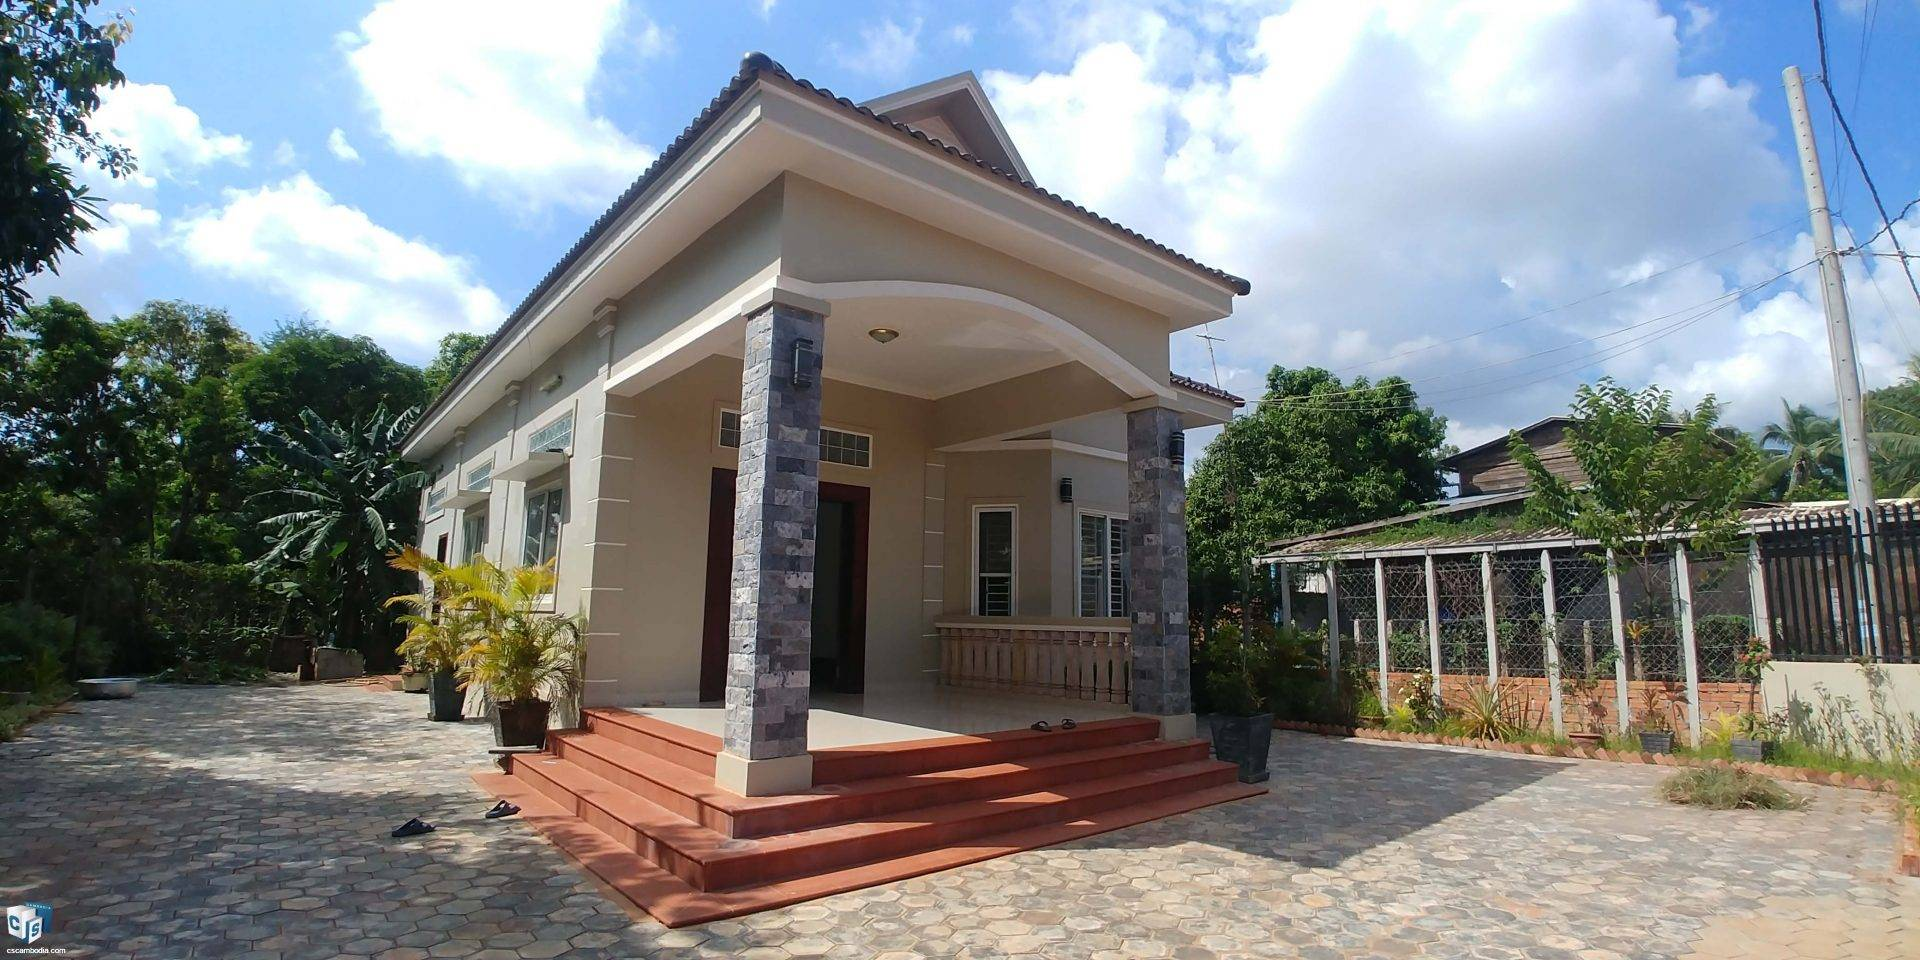 2 Bedroom House – For Rent- Sla Kram Commune – Siem Reap